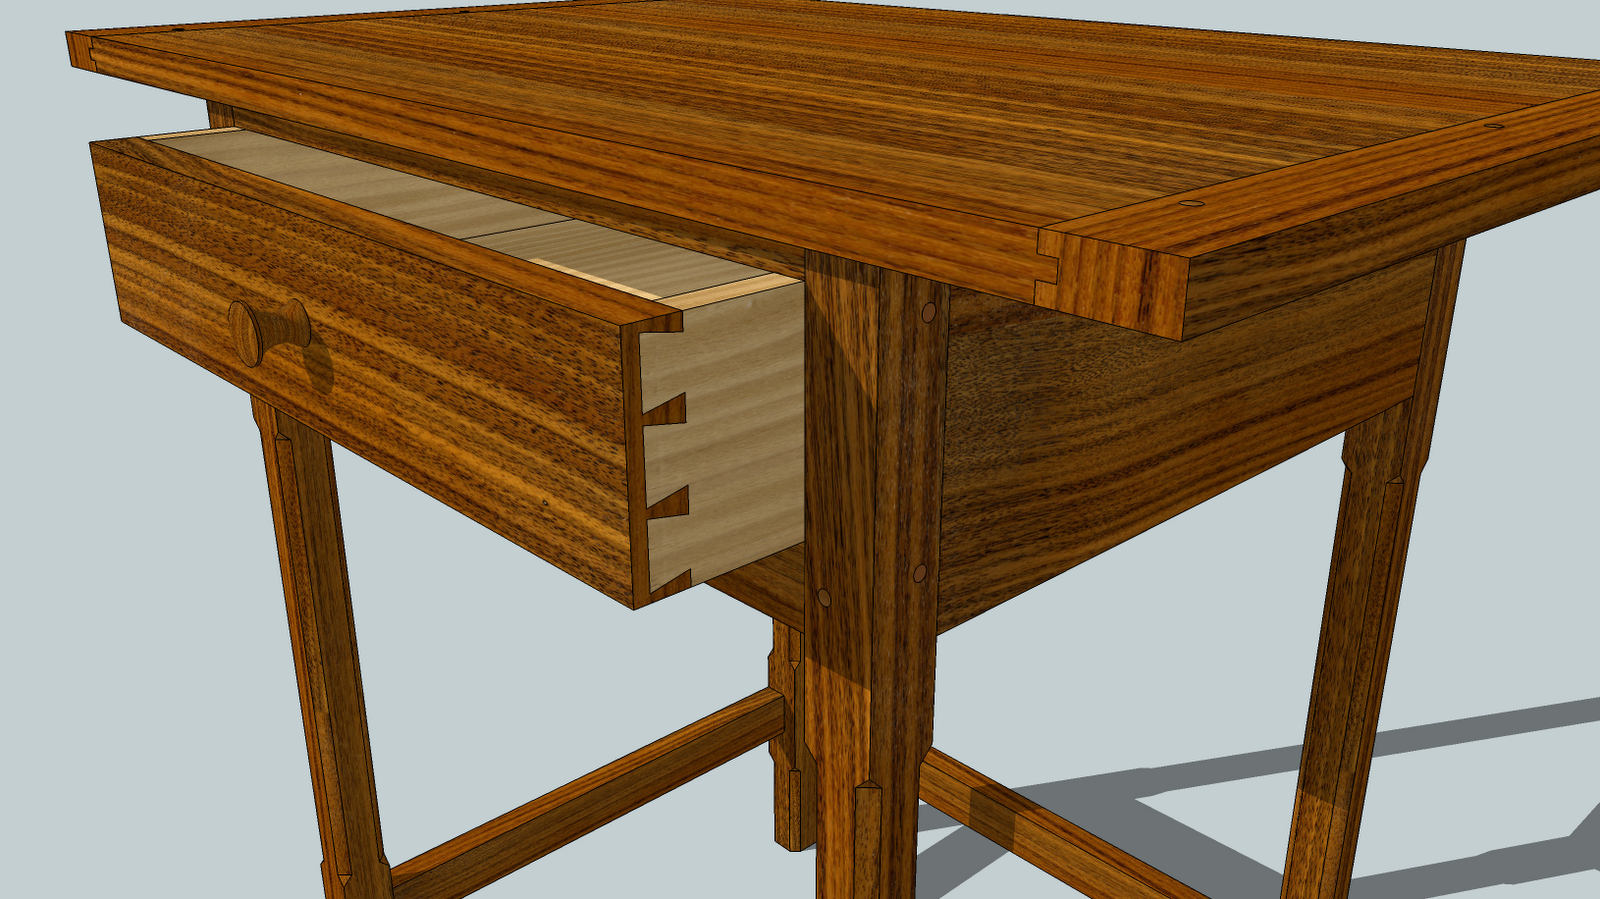 woodworking sketchup